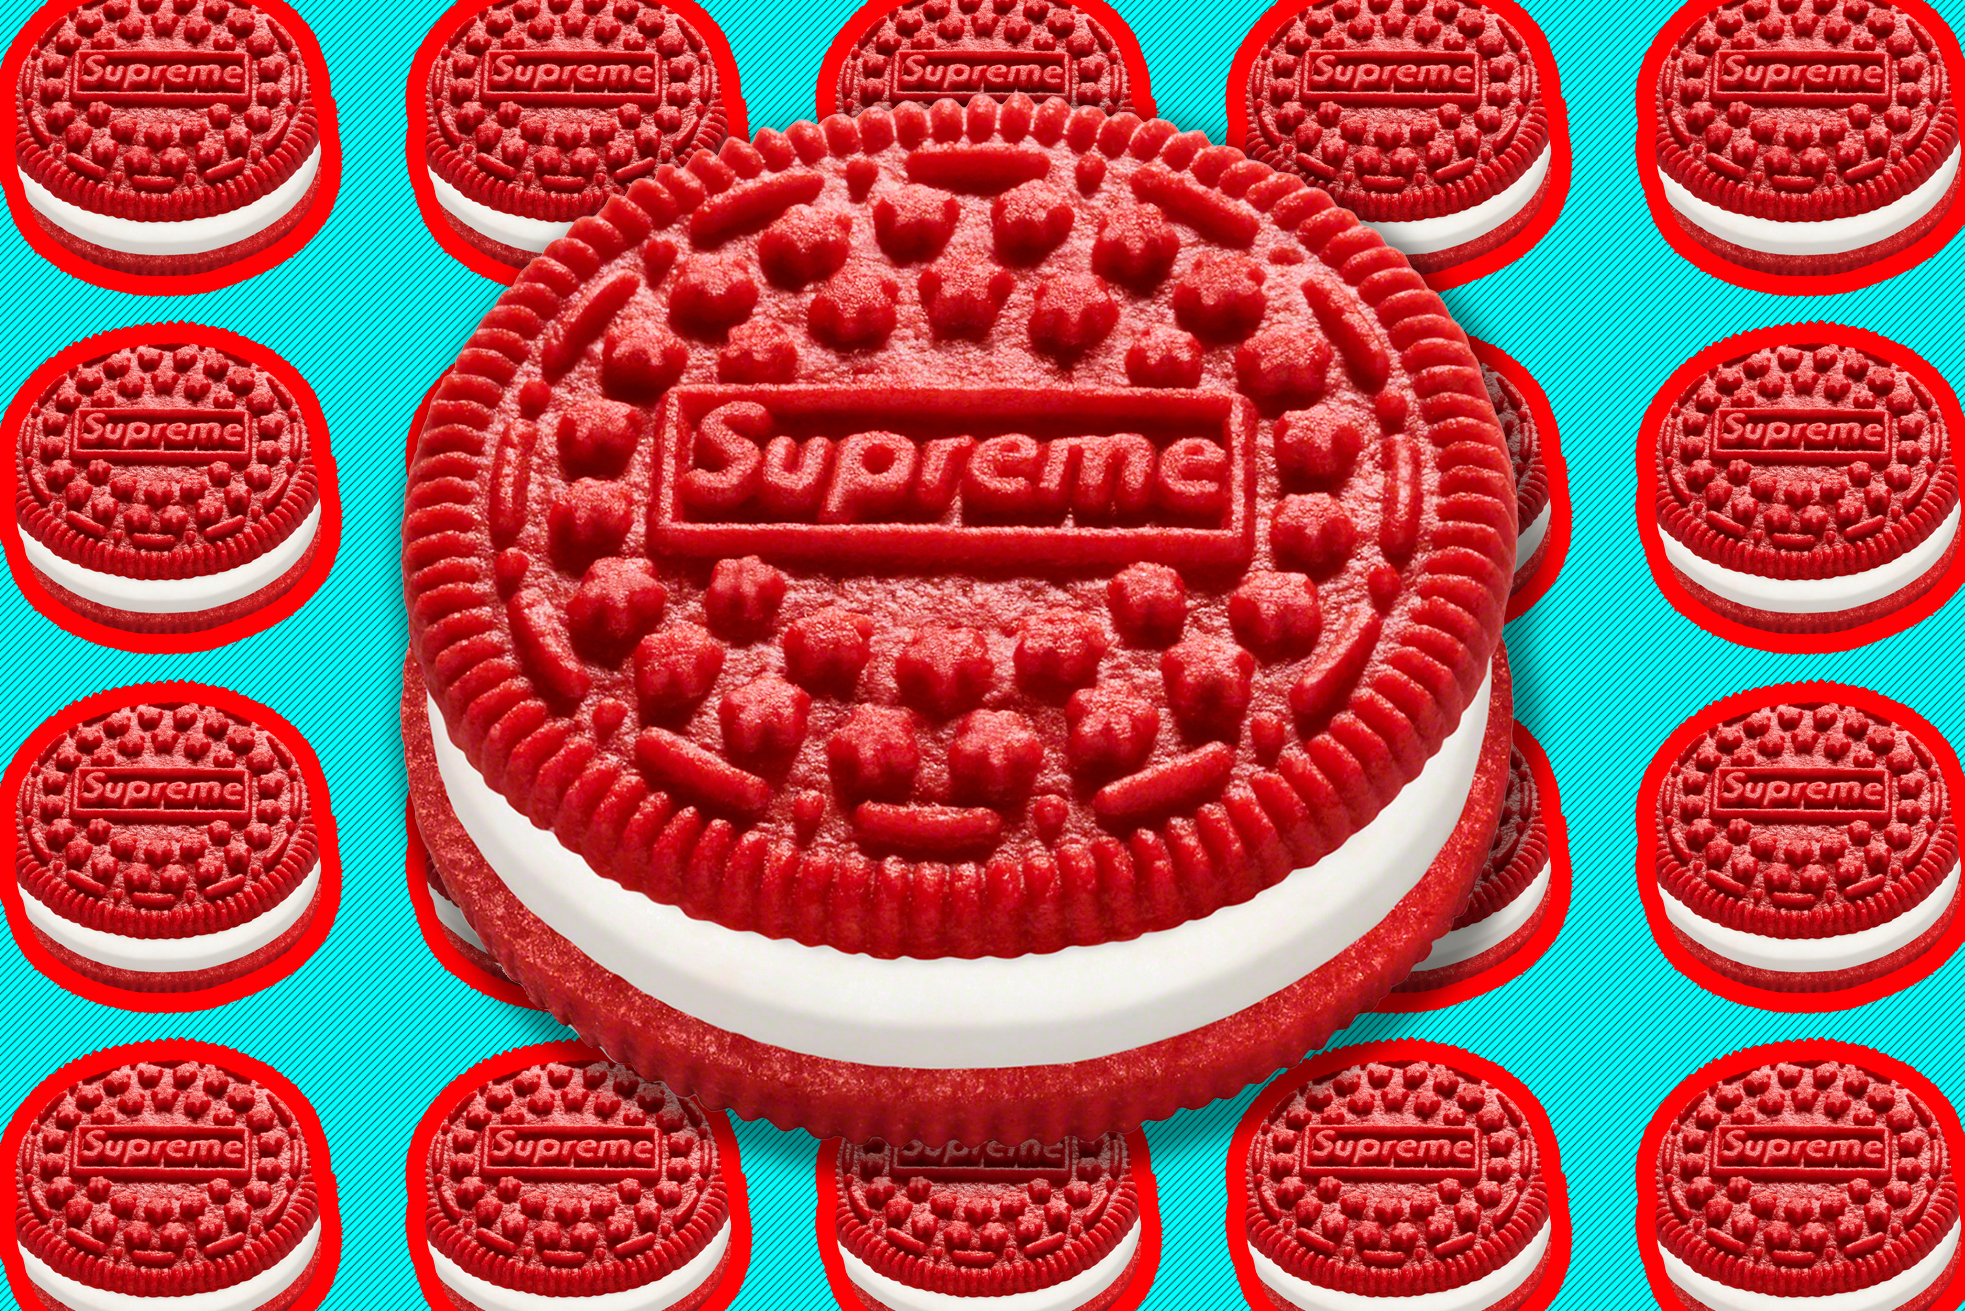 Supreme Oreos are coming at $8 for a three-pack